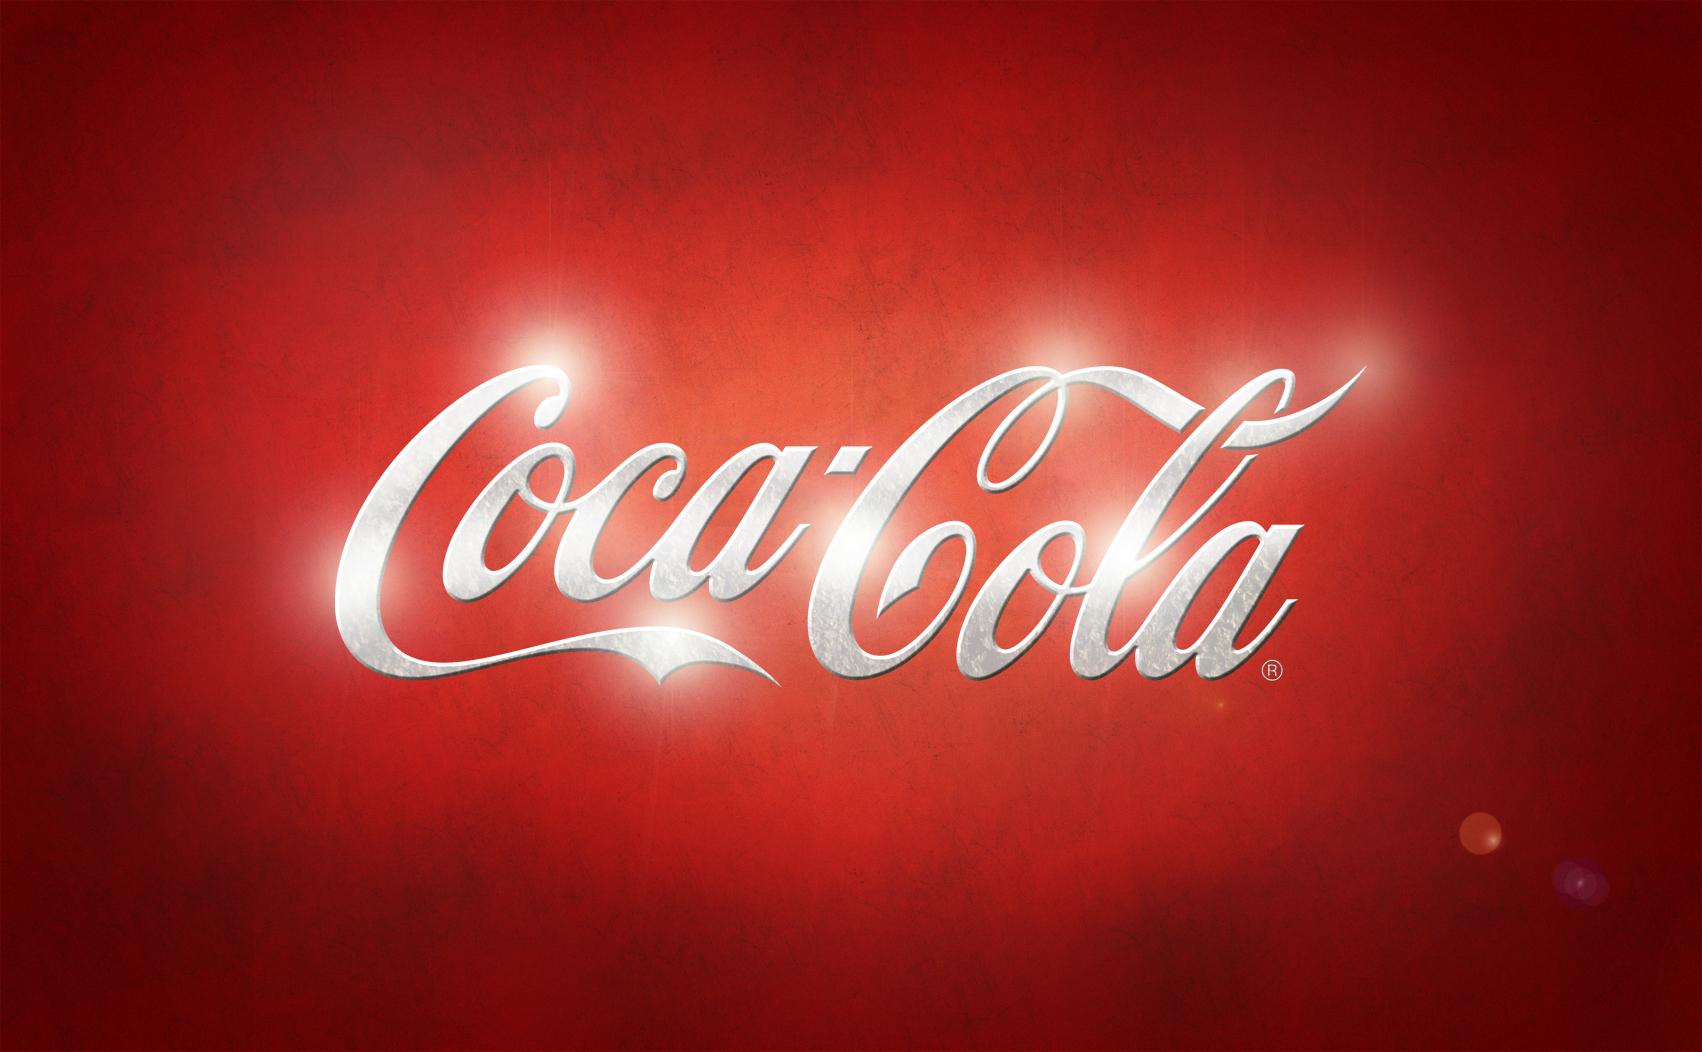 Coke Images CC Wallpaper HD And Background Photos